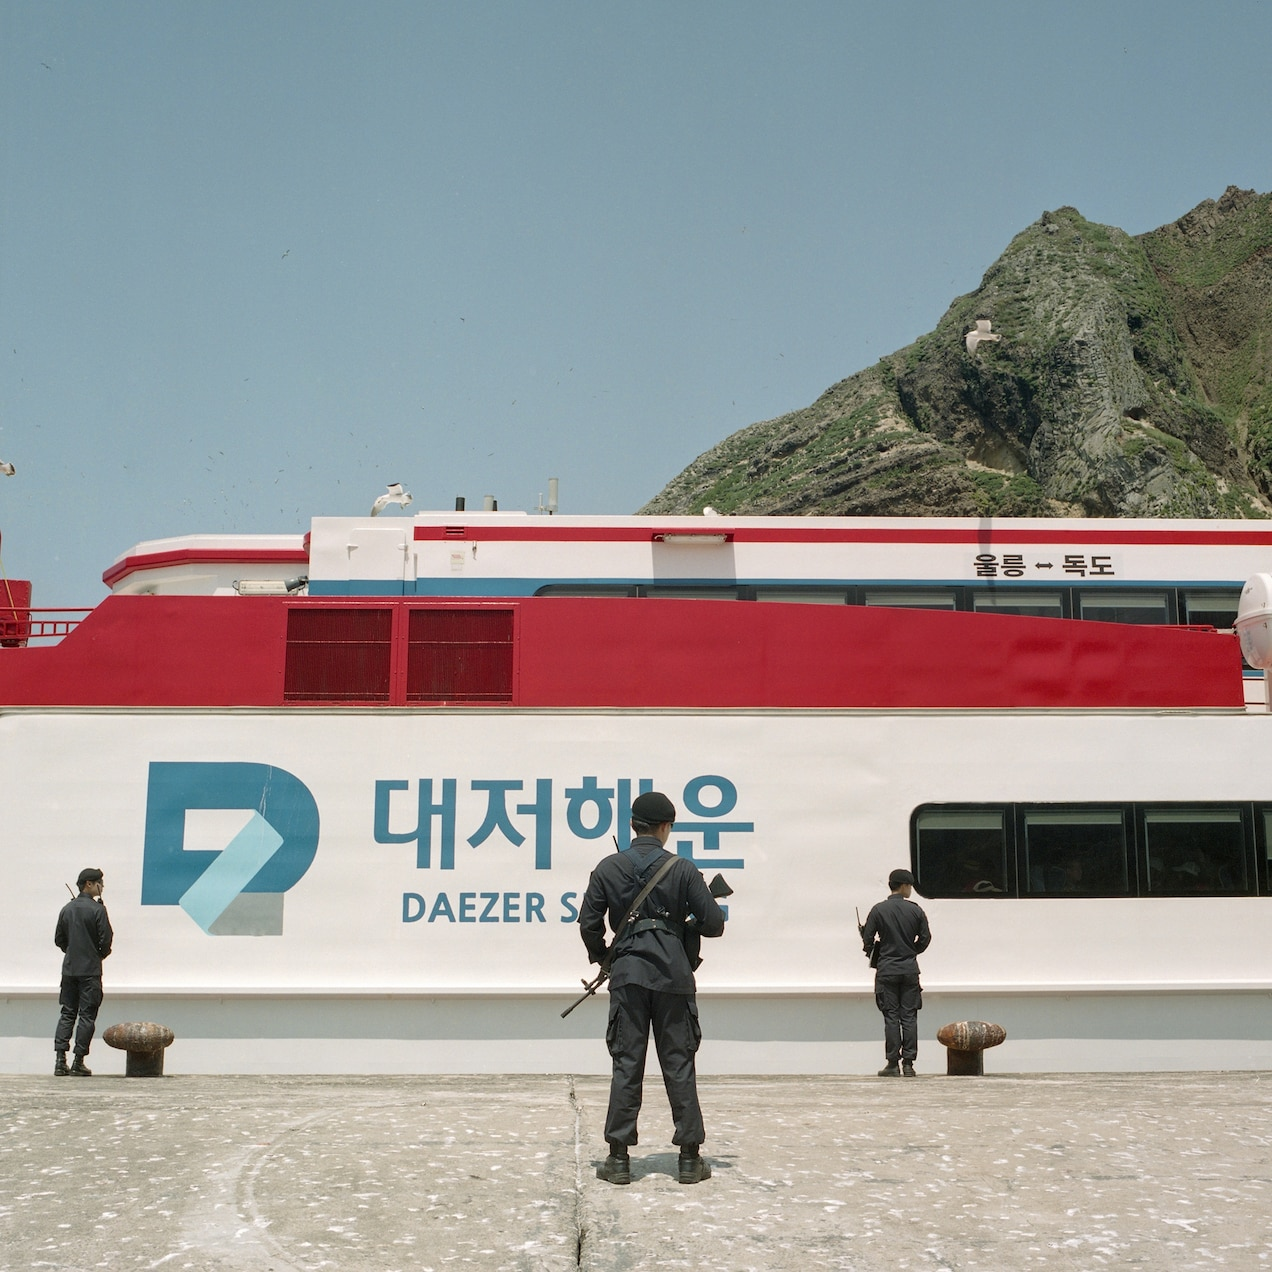 A tourist boat docks for a visit.